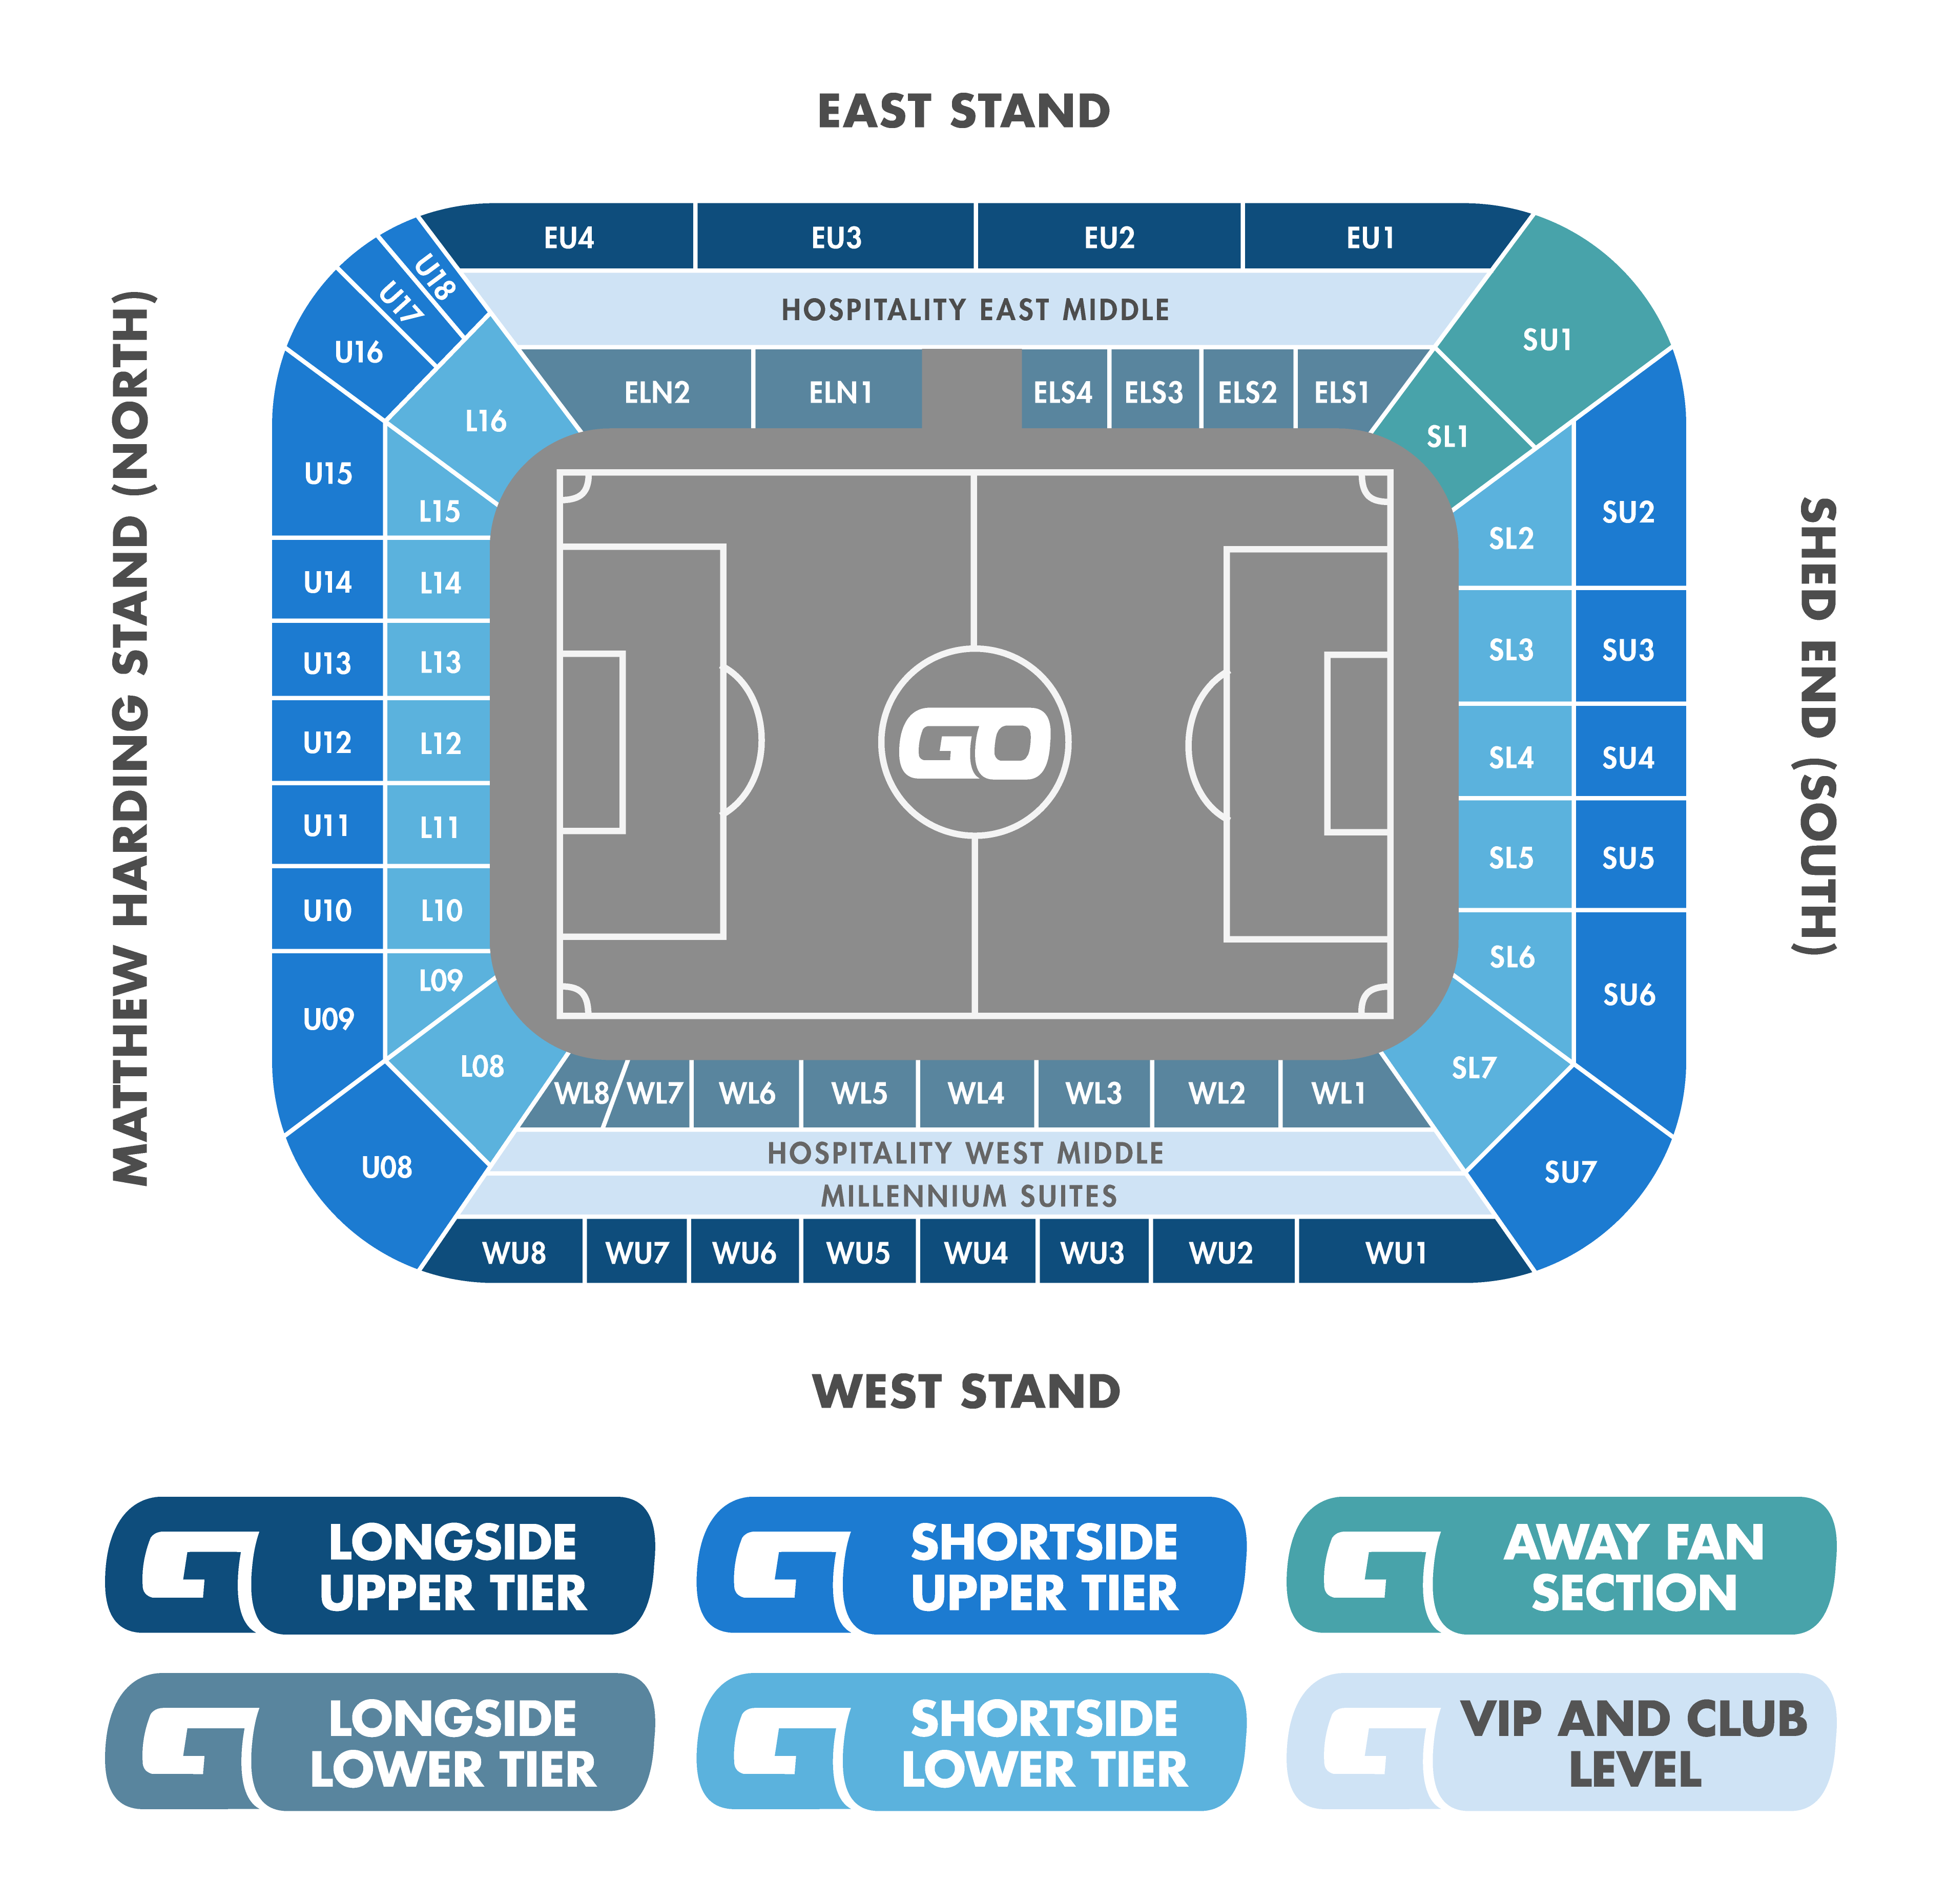 map my walk free with Chelsea Match Ticket Packages on Motherstwo also 9929858074 in addition 2798332358 additionally Chelsea Match Ticket Packages together with 4377898467.